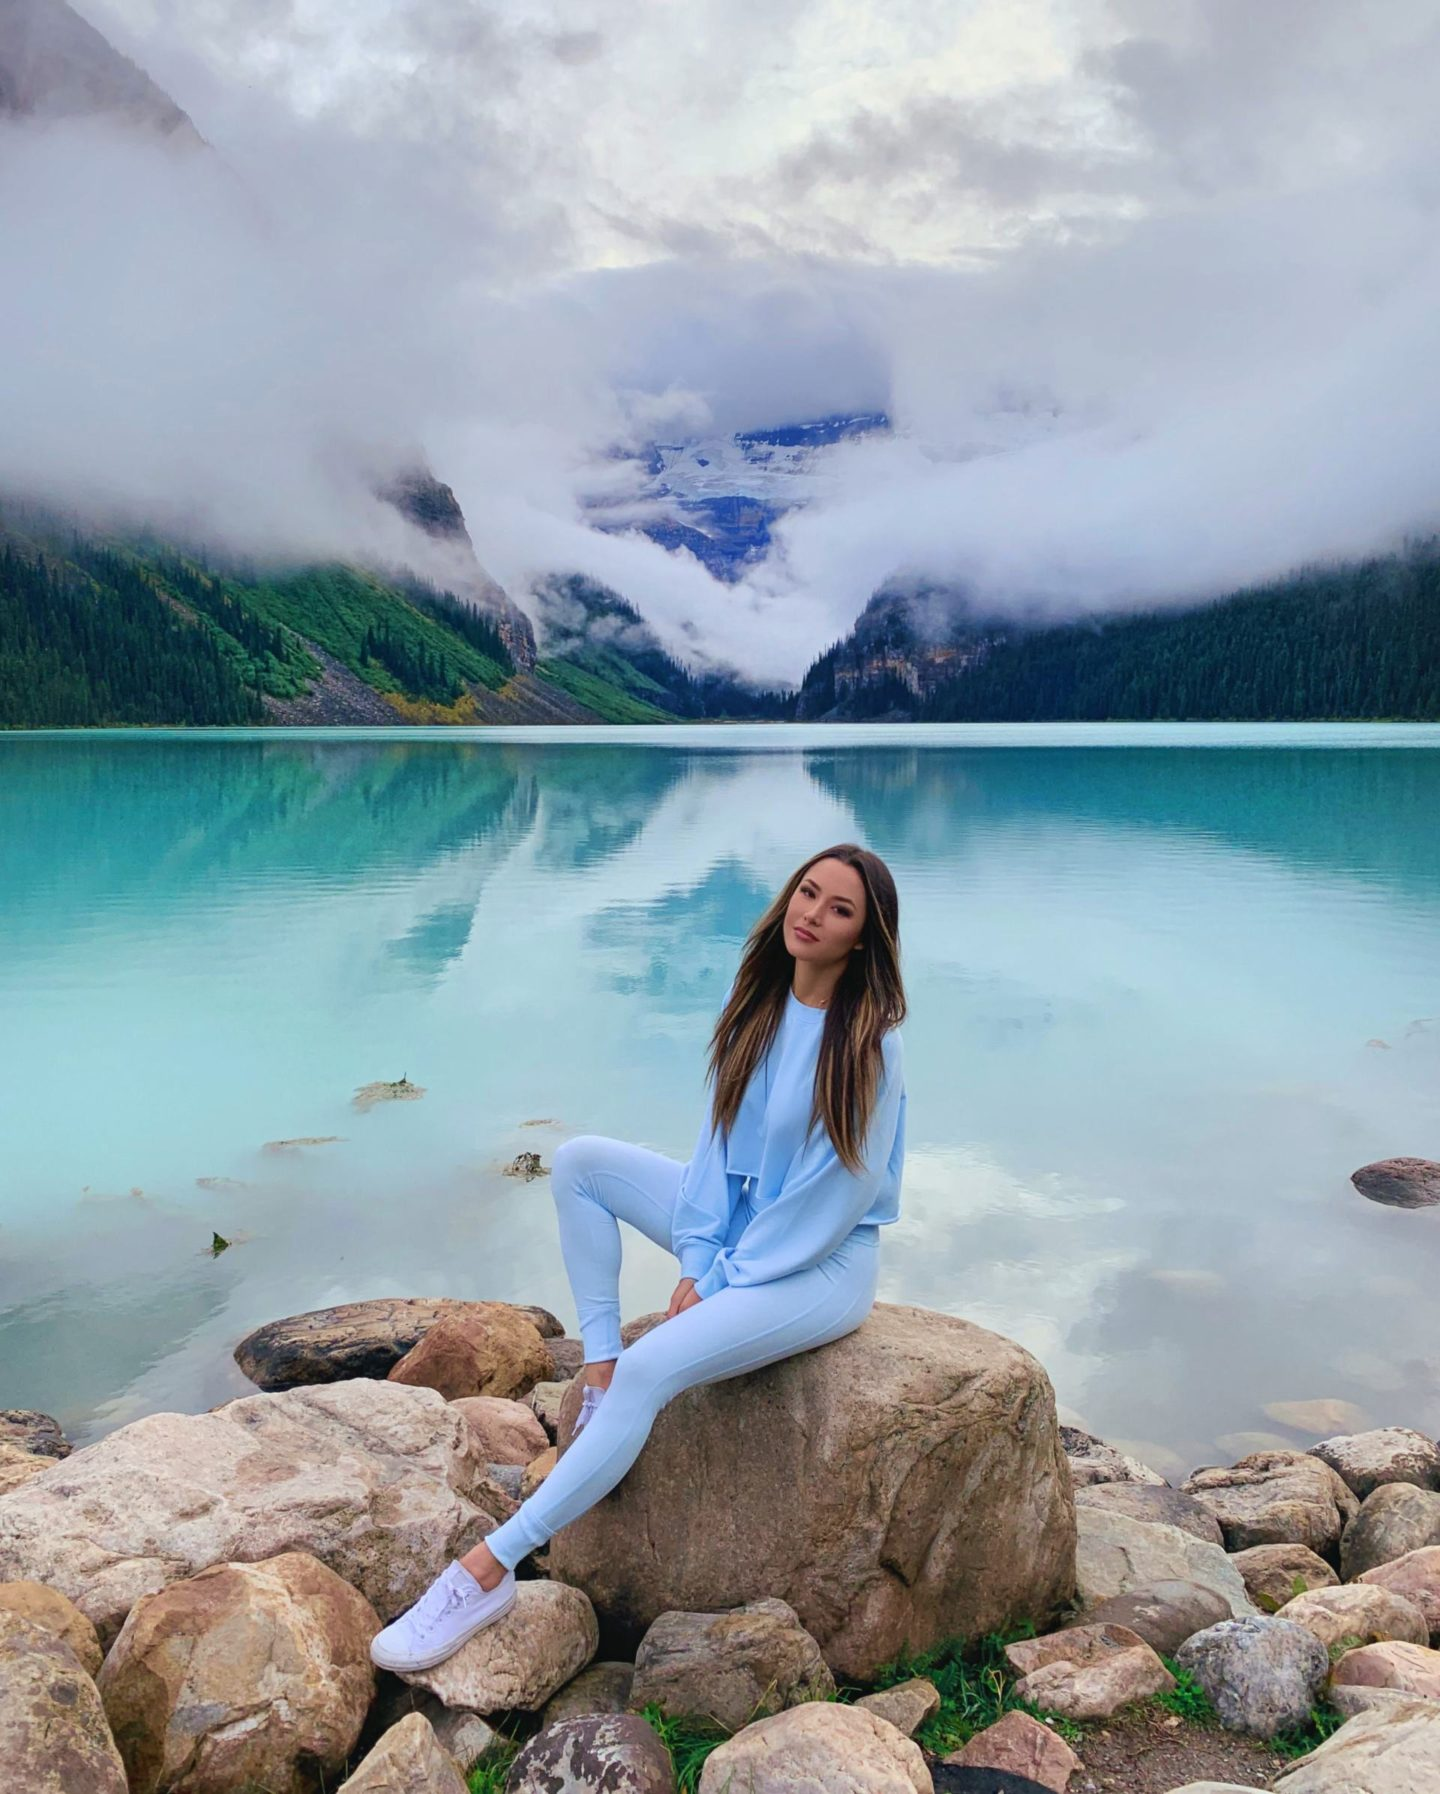 Lake Louise and Banff travel guide outfits hapatime